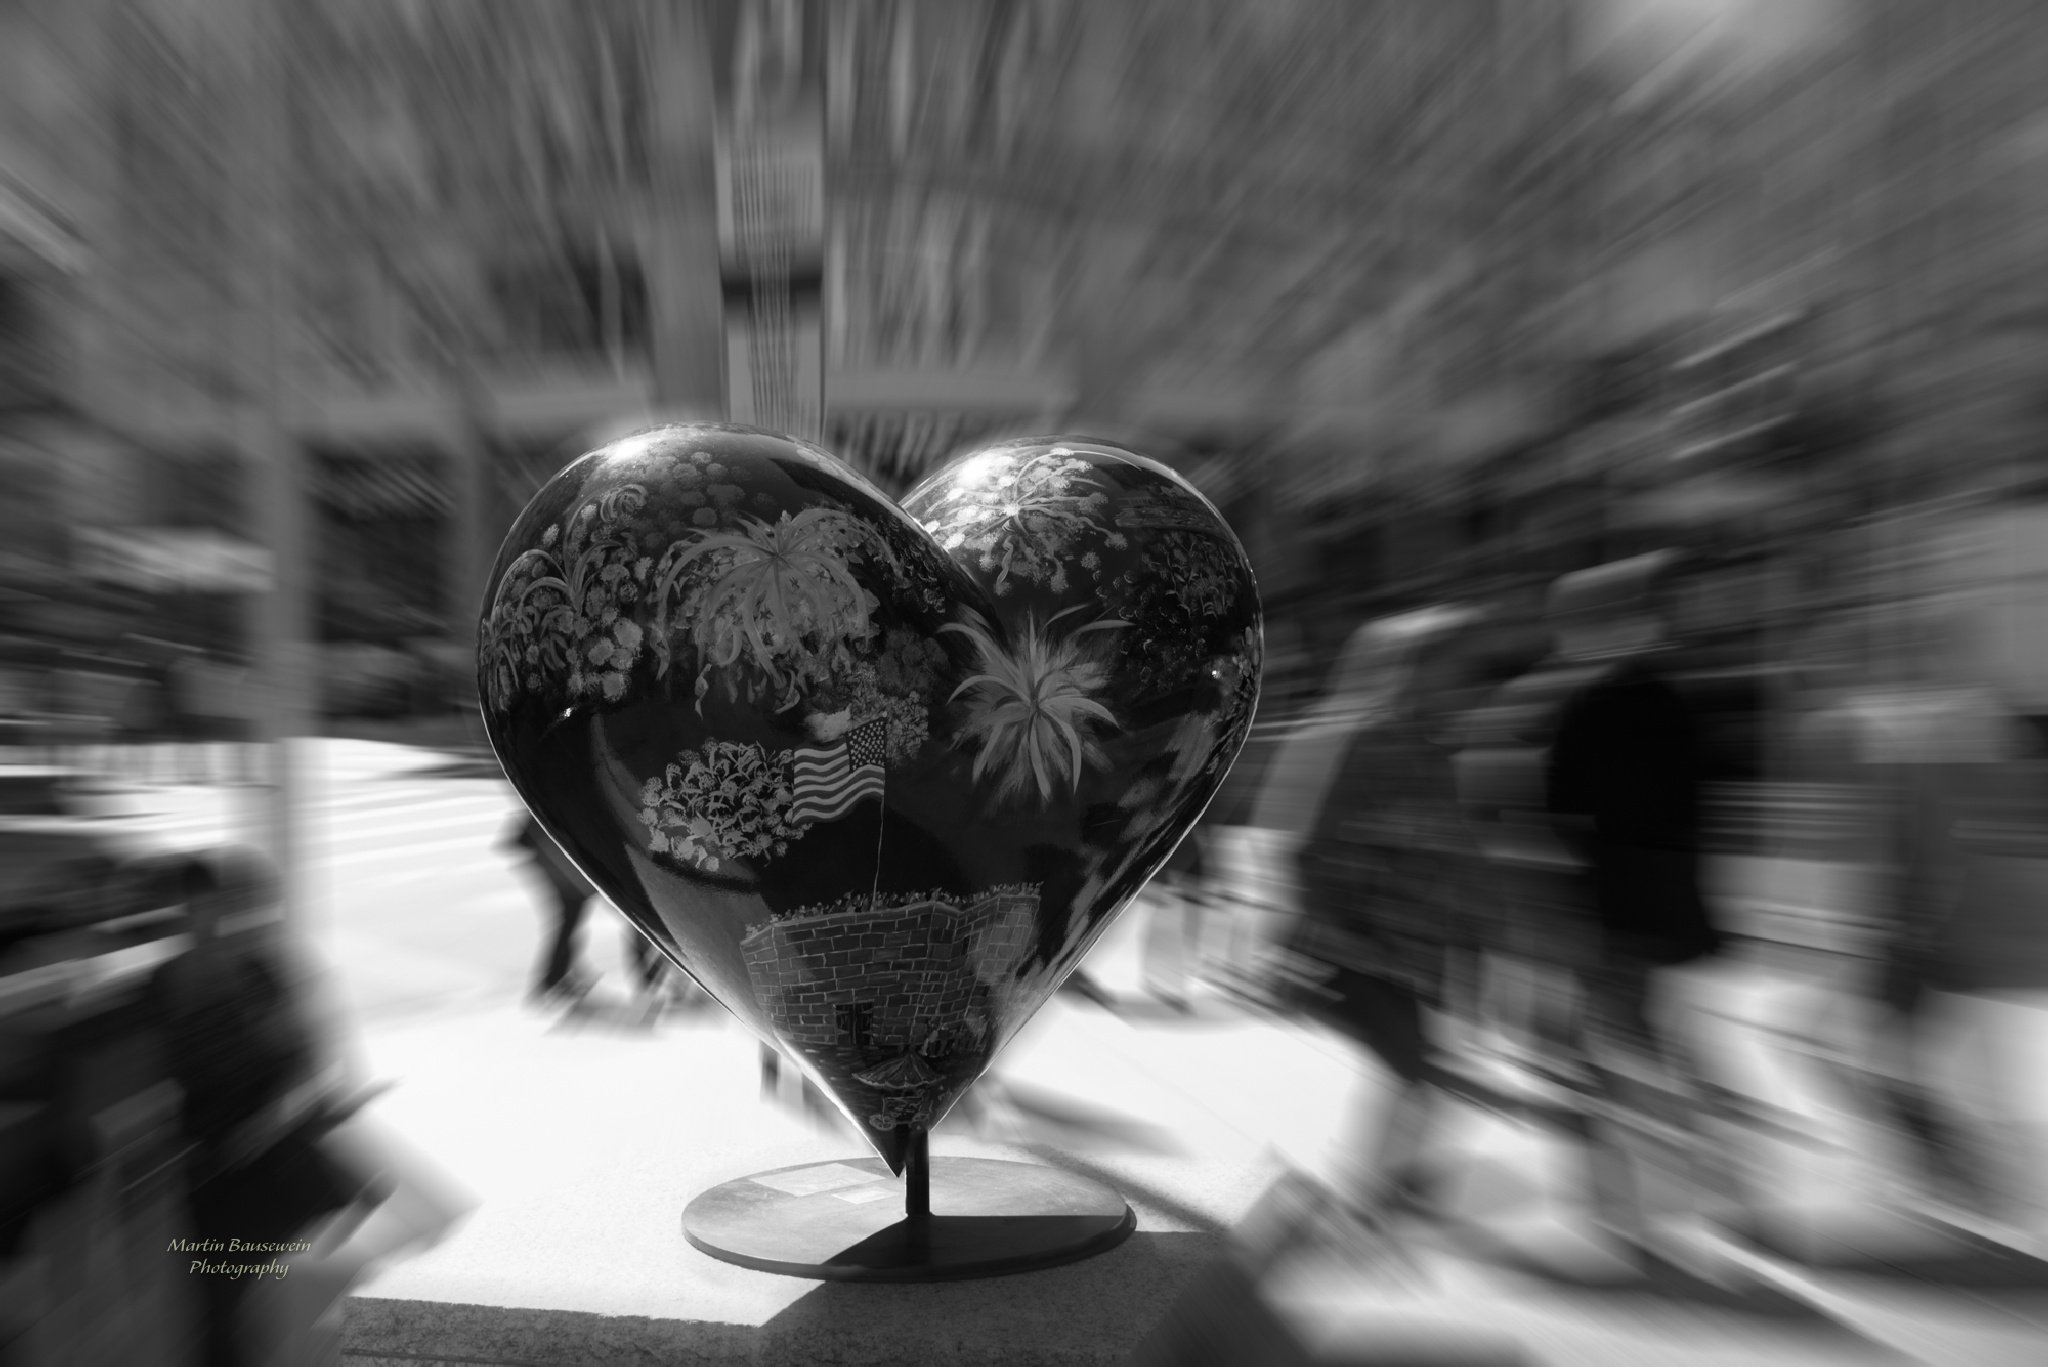 the heart by Martin Bausewein